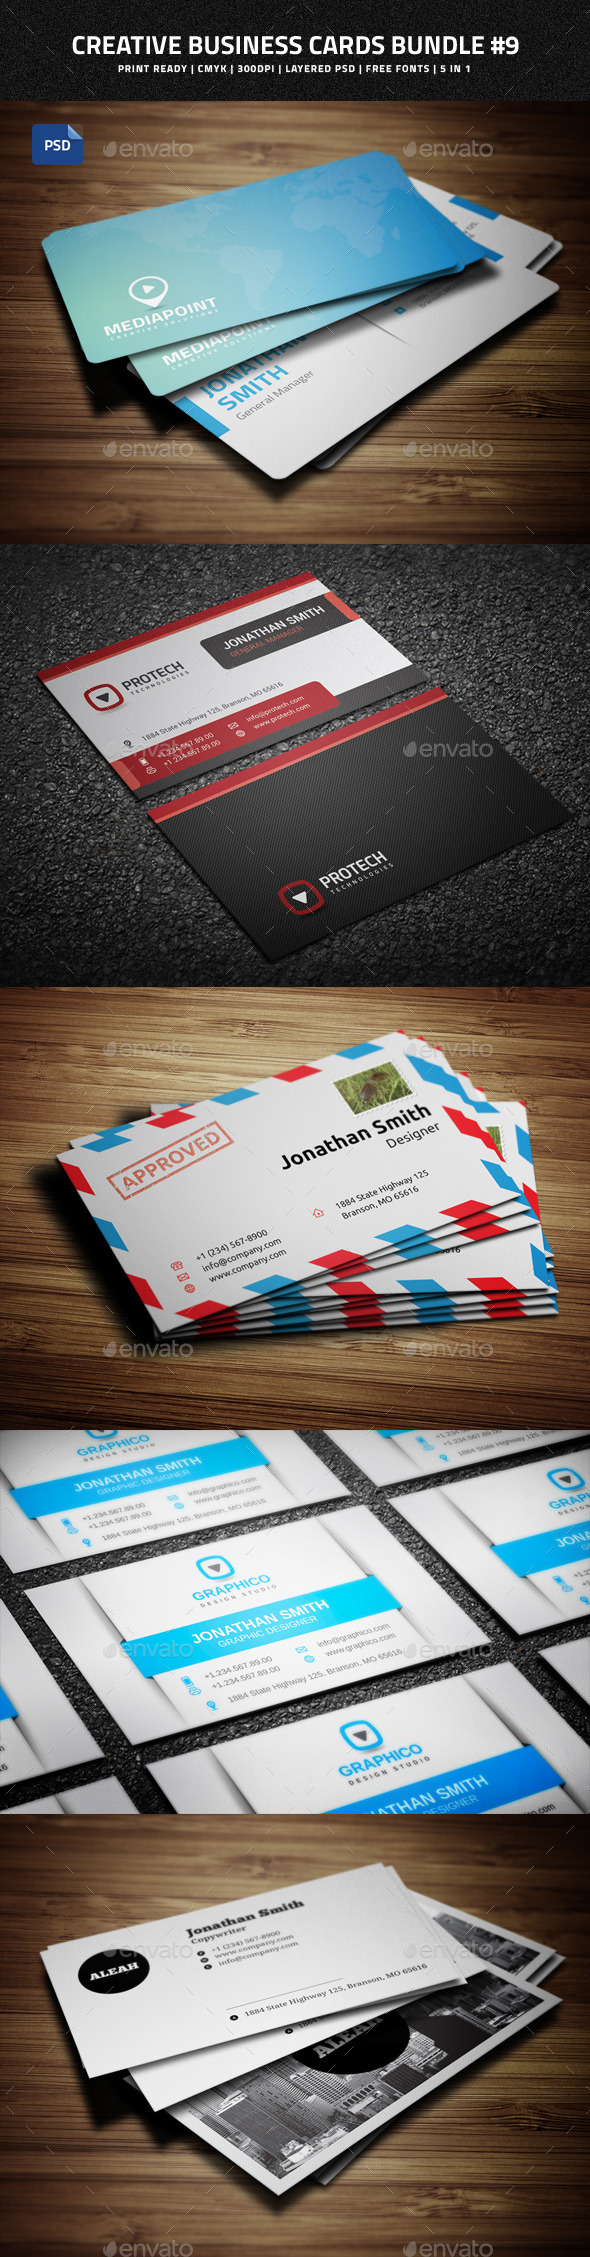 GraphicRiver Creative Business Cards Bundle #9 9060621